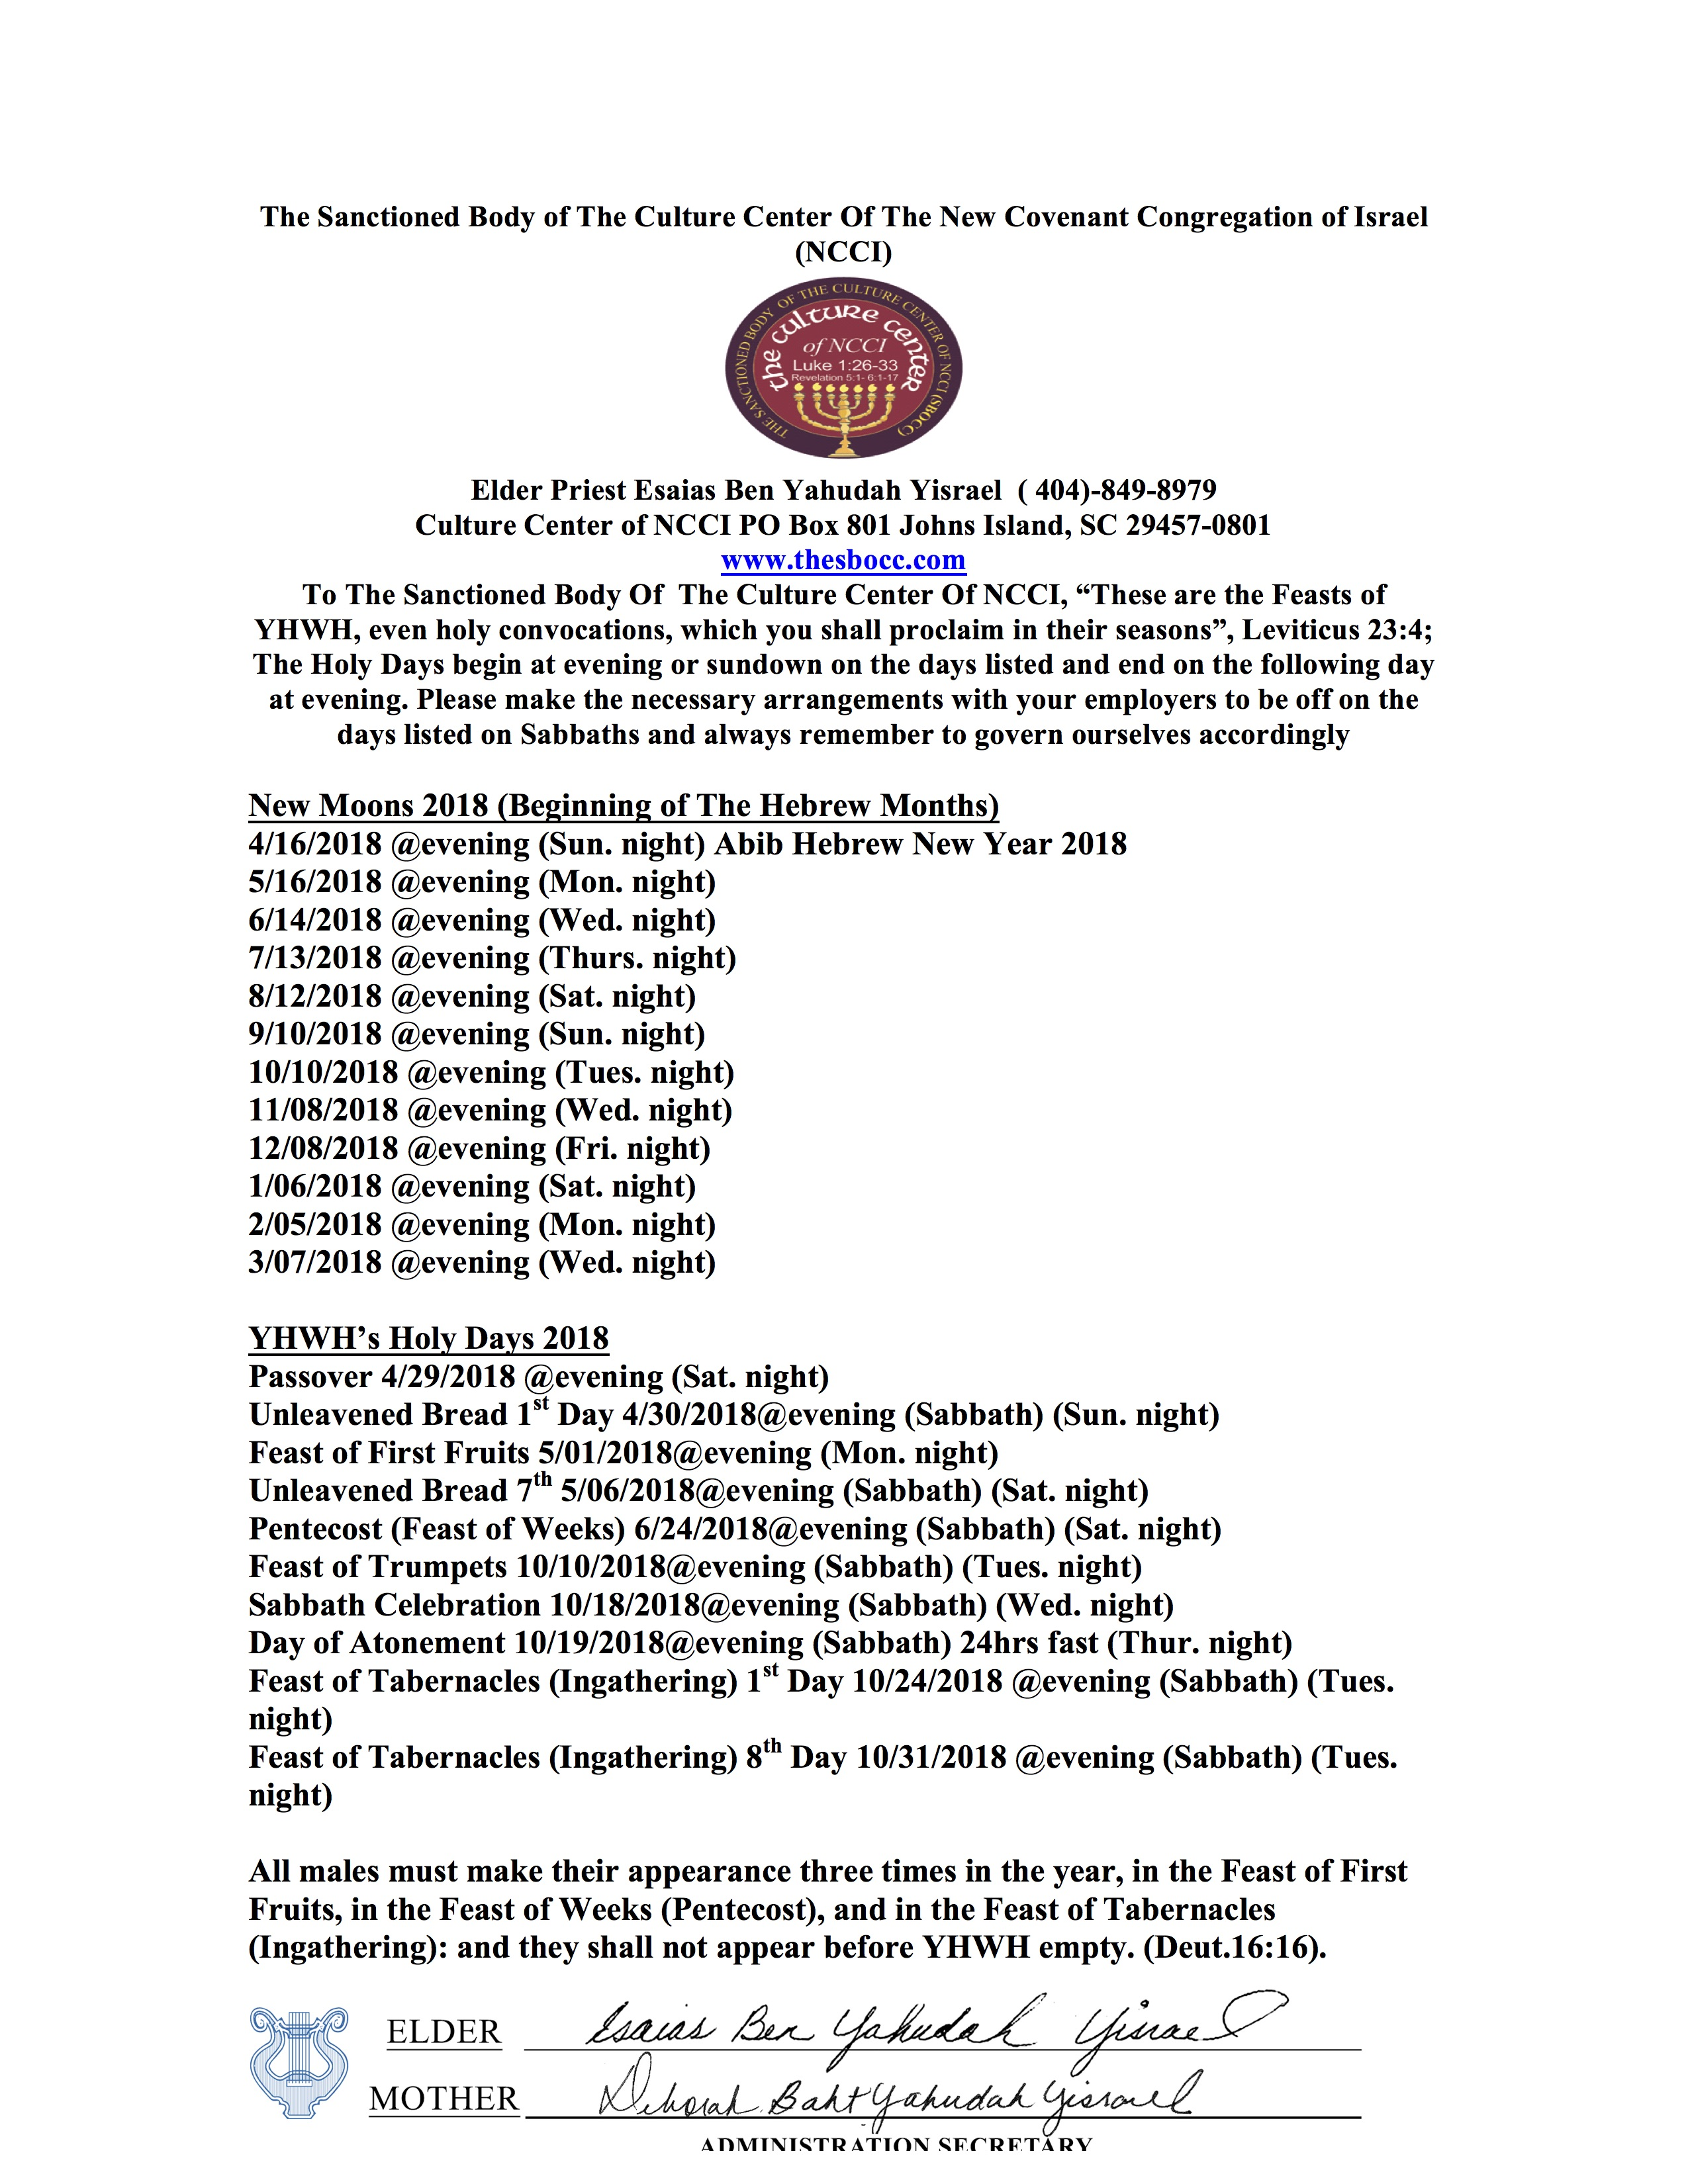 PDF of New Moons & Holydays for the 2018 Hebrew Year